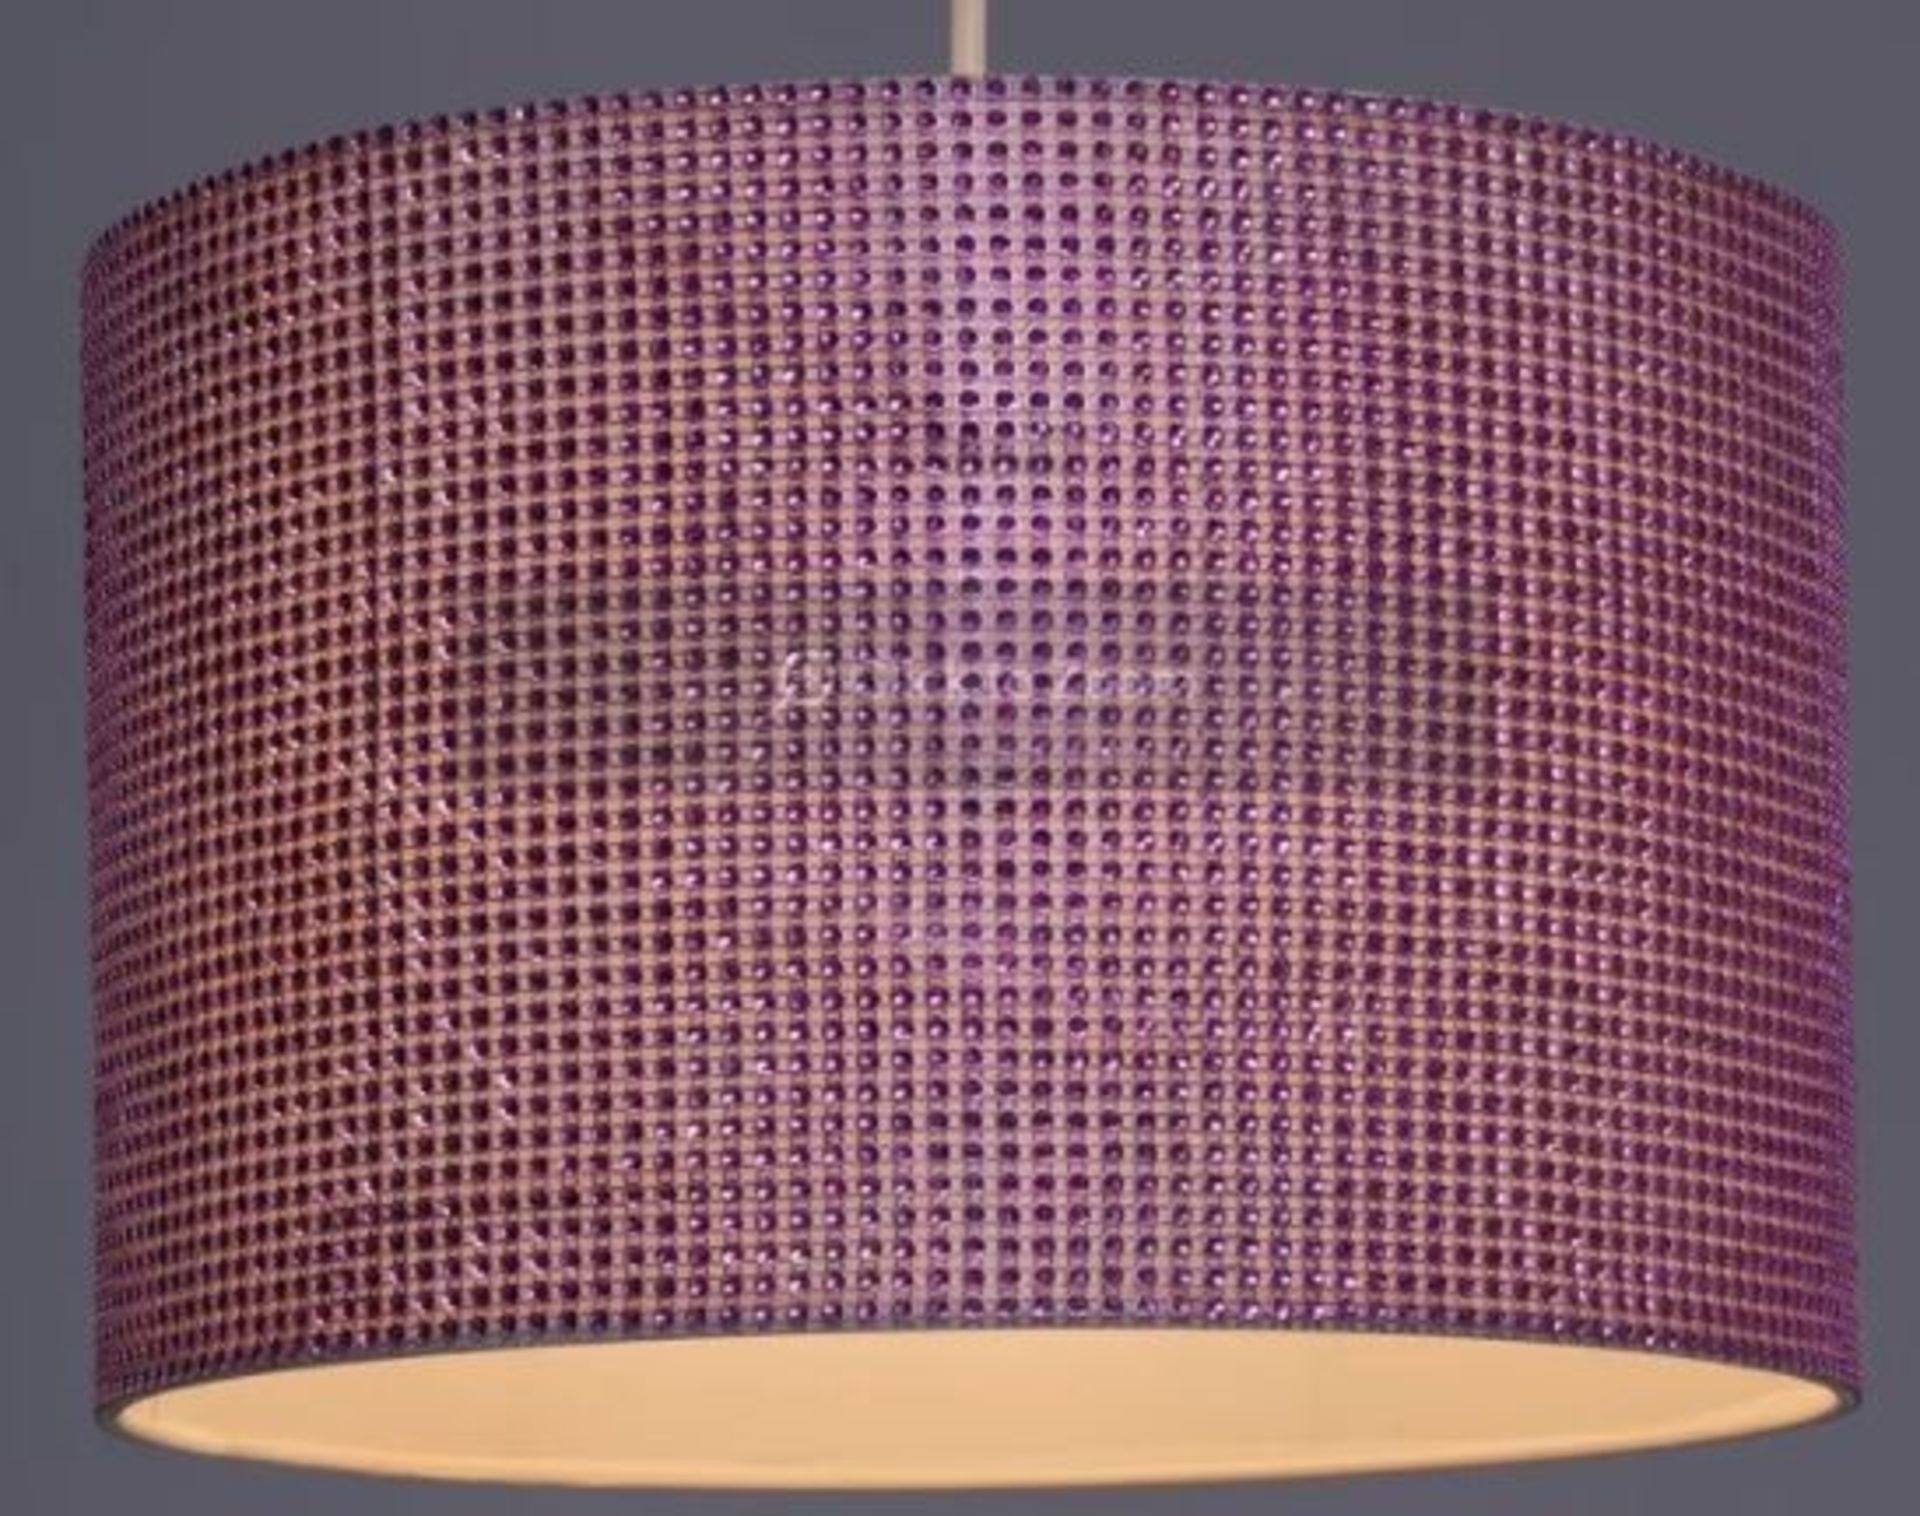 GLITZY 30CM DRUM LAMP SHADE